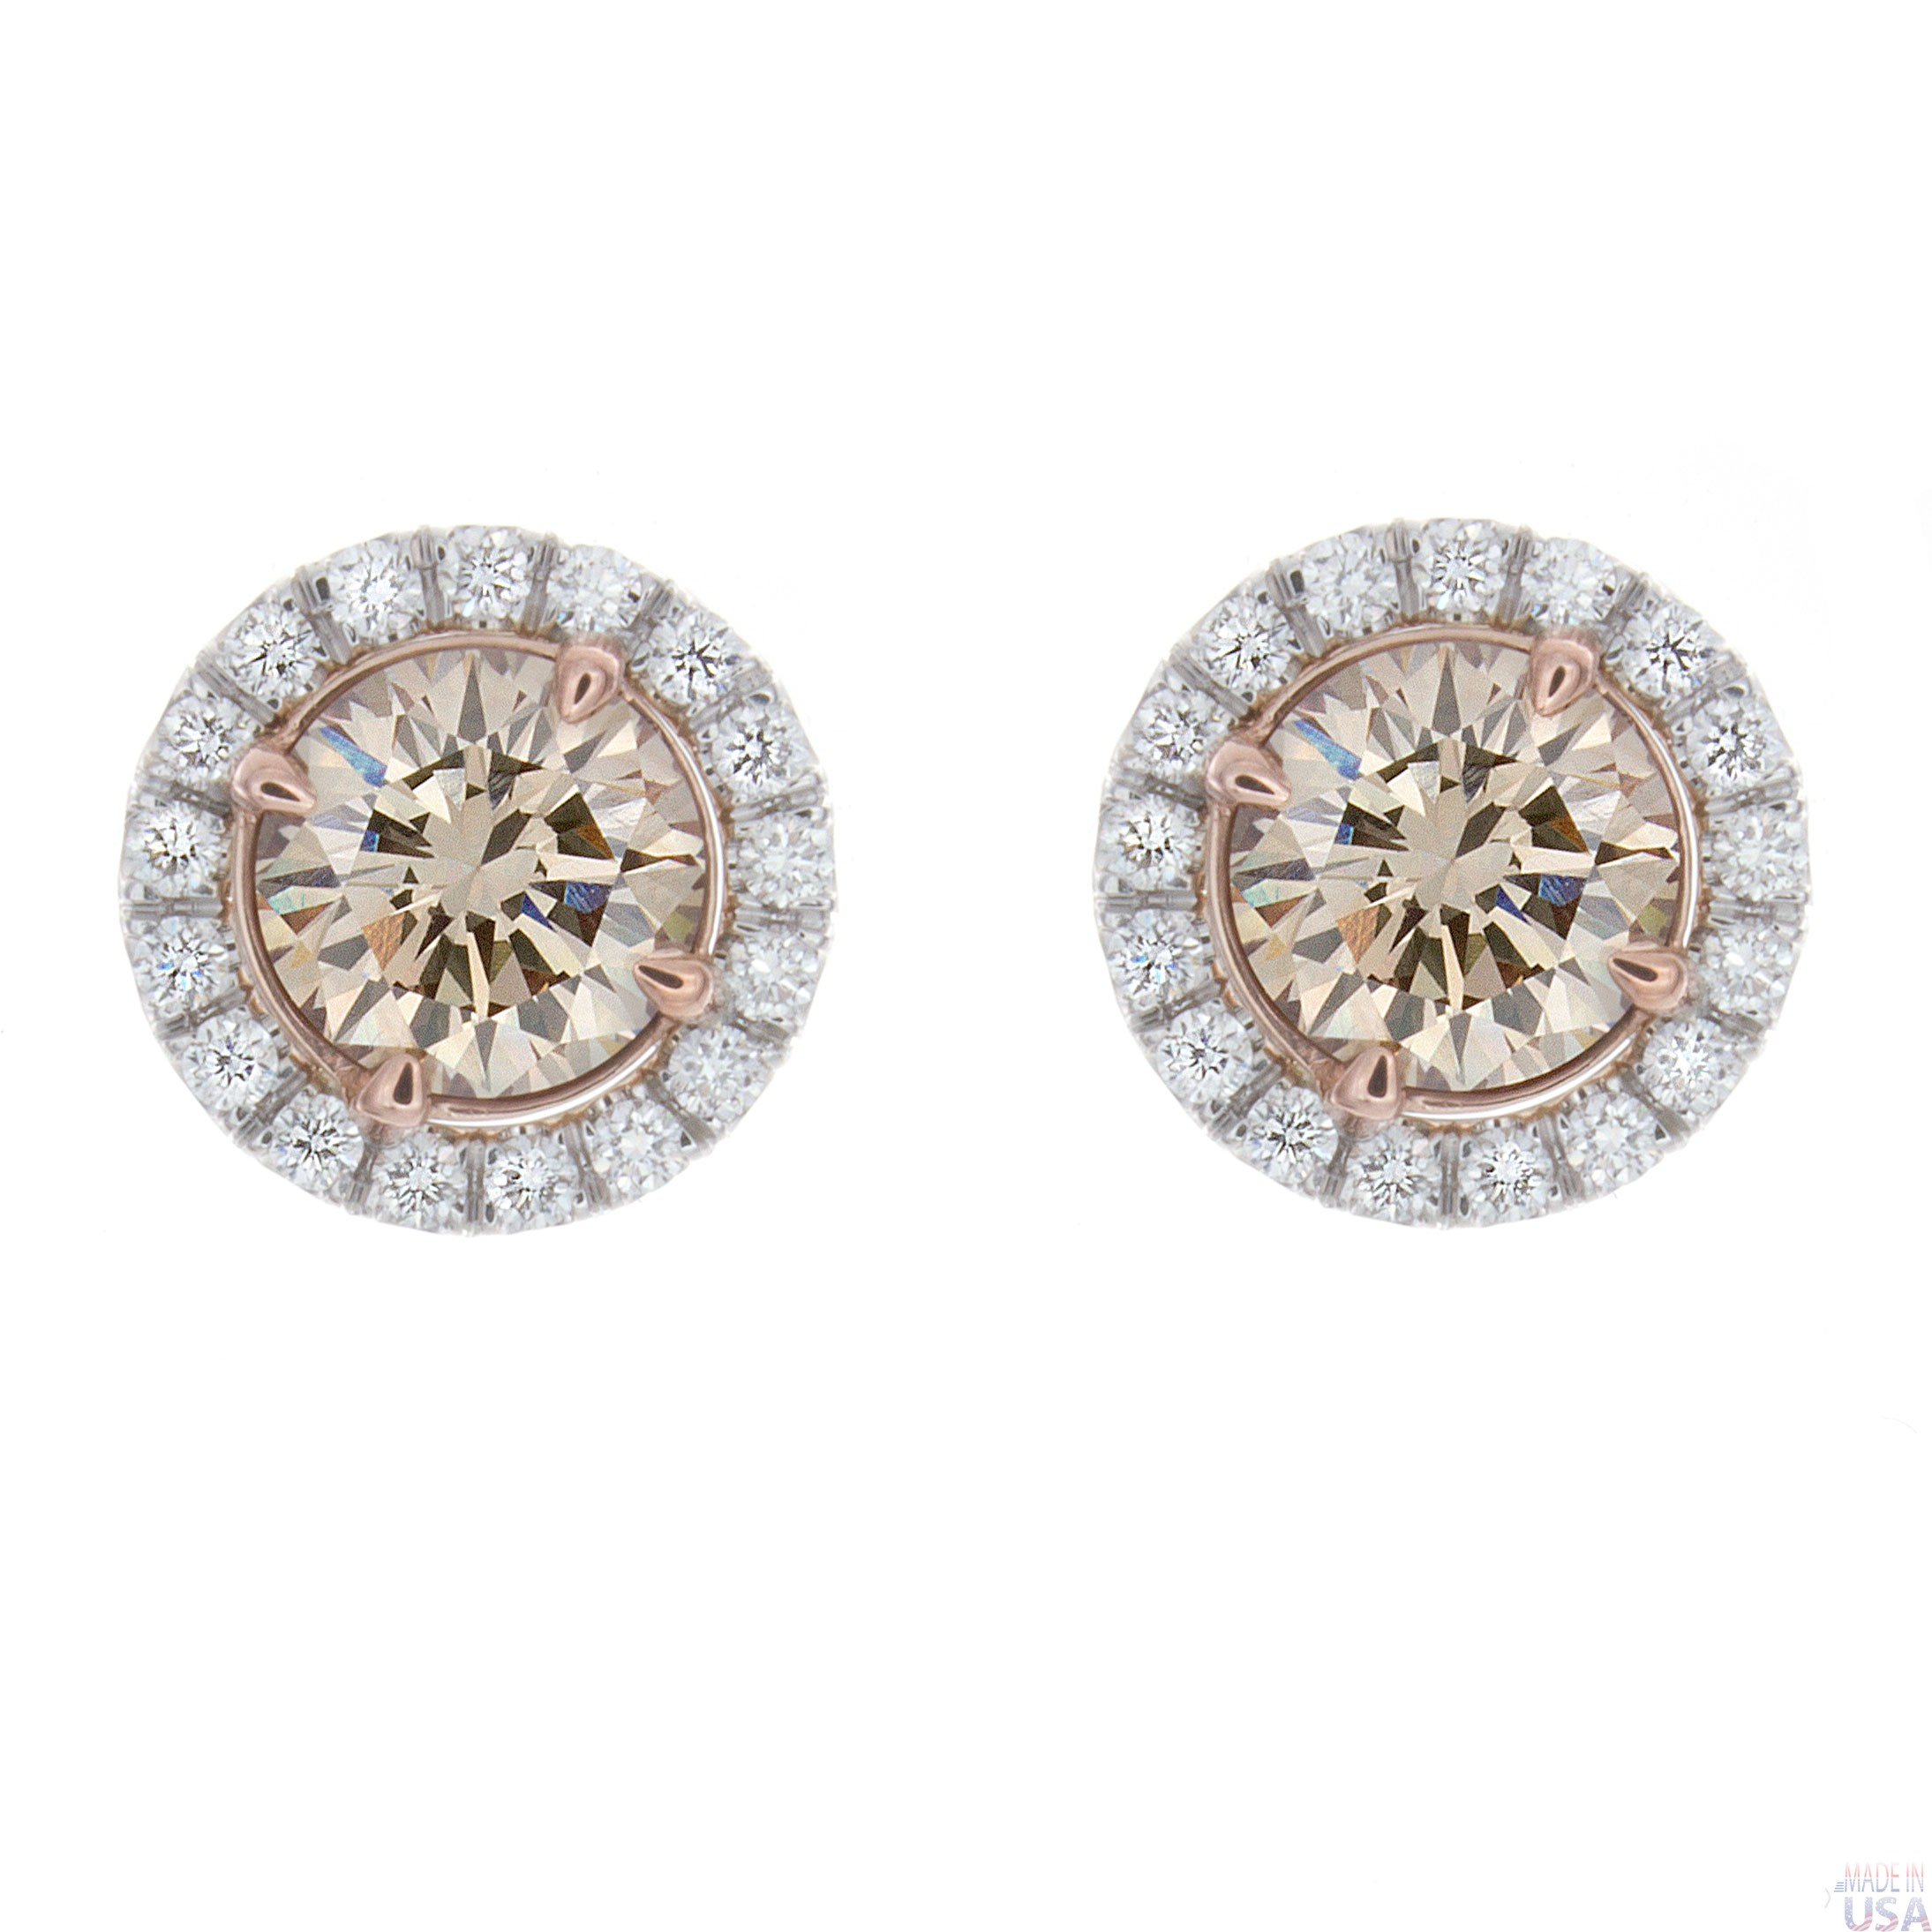 kay earrings champagne white tw expand zm w gold kaystore mv t click diamond carat stud to en